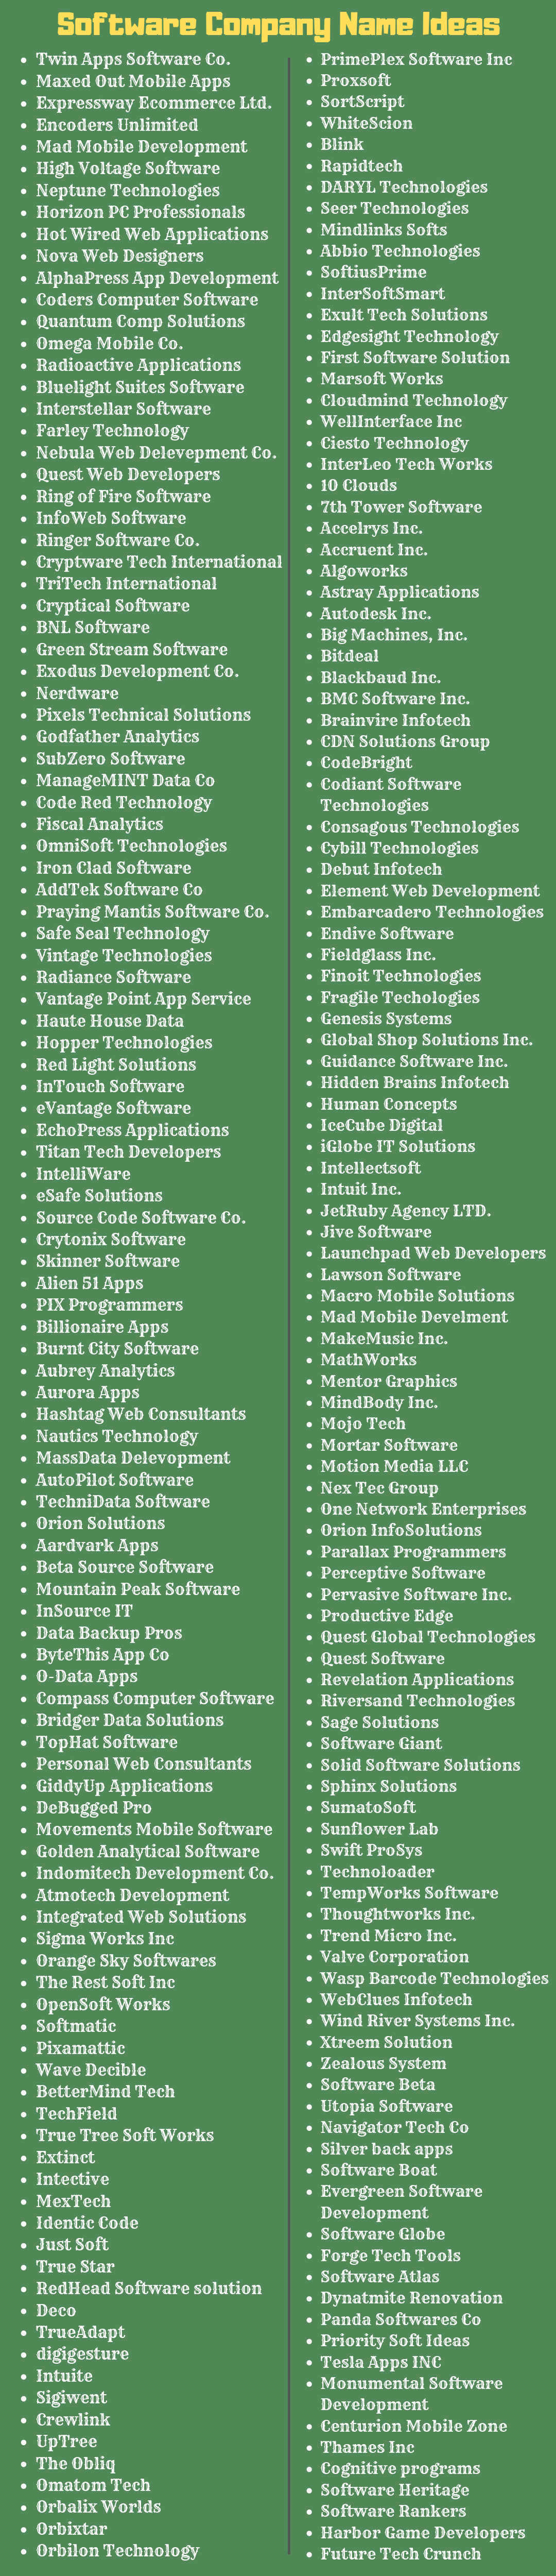 300 Creative Name Ideas For Software Companies